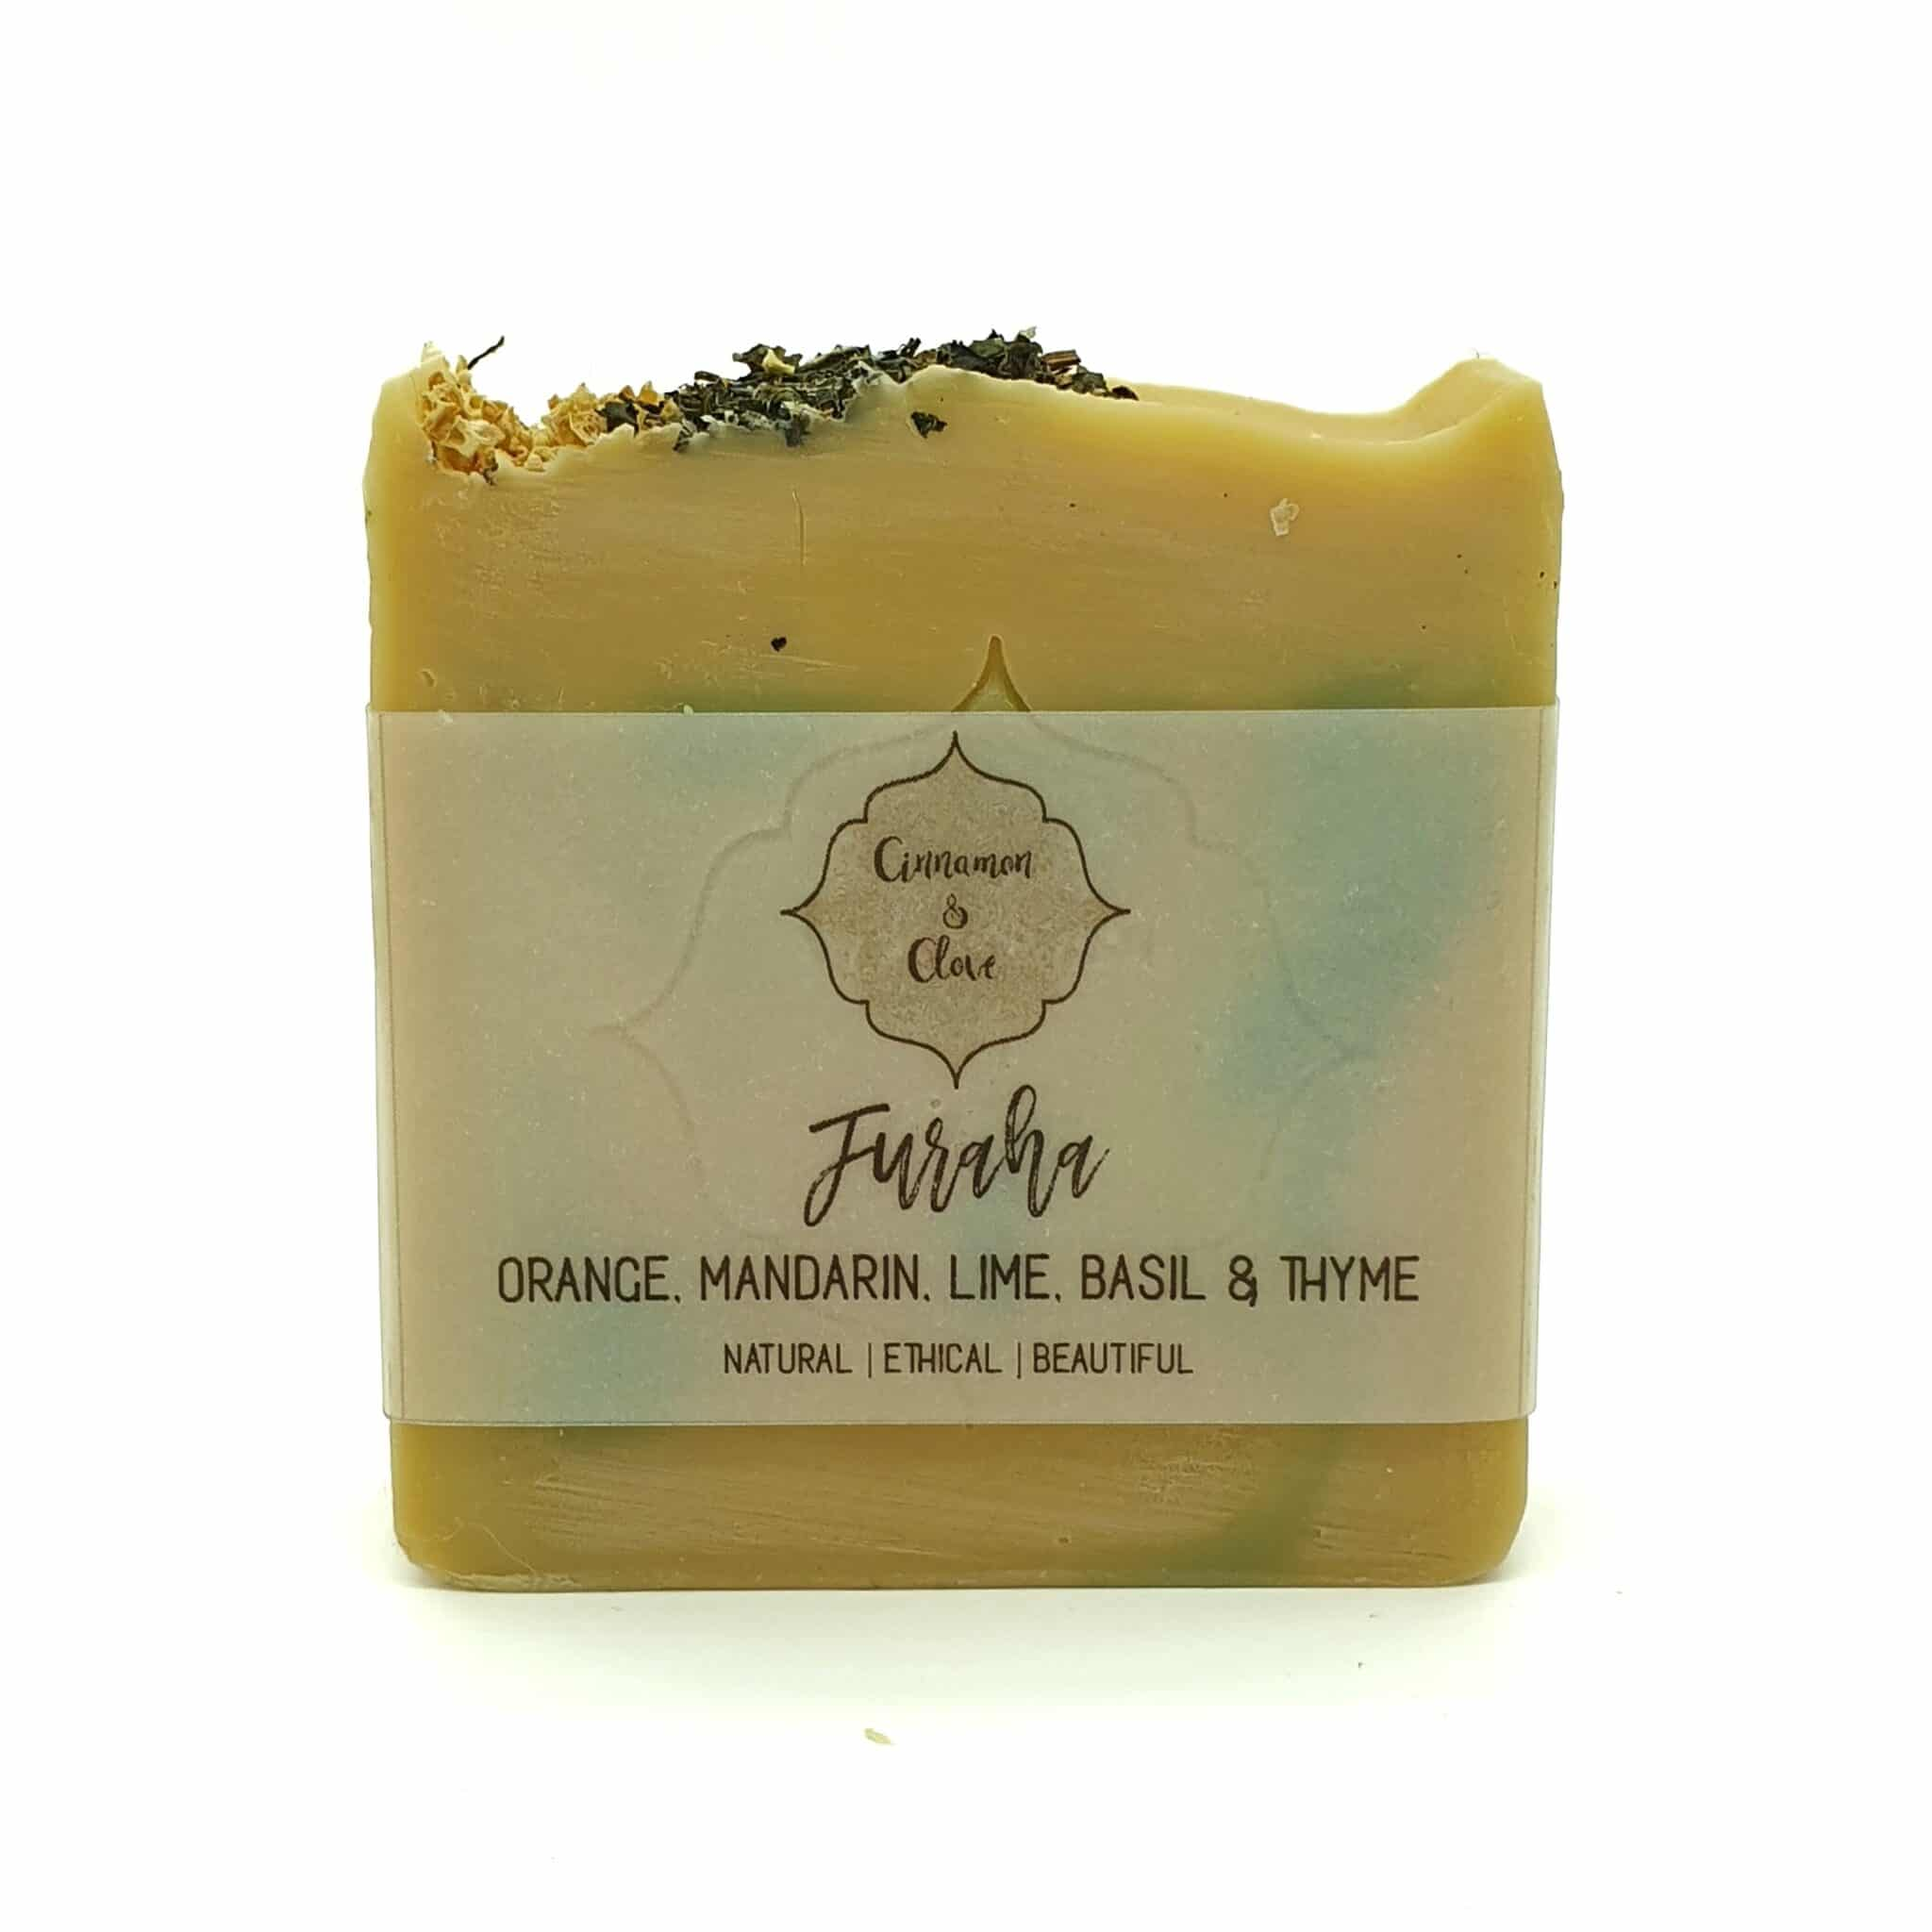 Furaha – Handcrafted All Natural Artisan Citrus Soap By Cinnamon And Clove